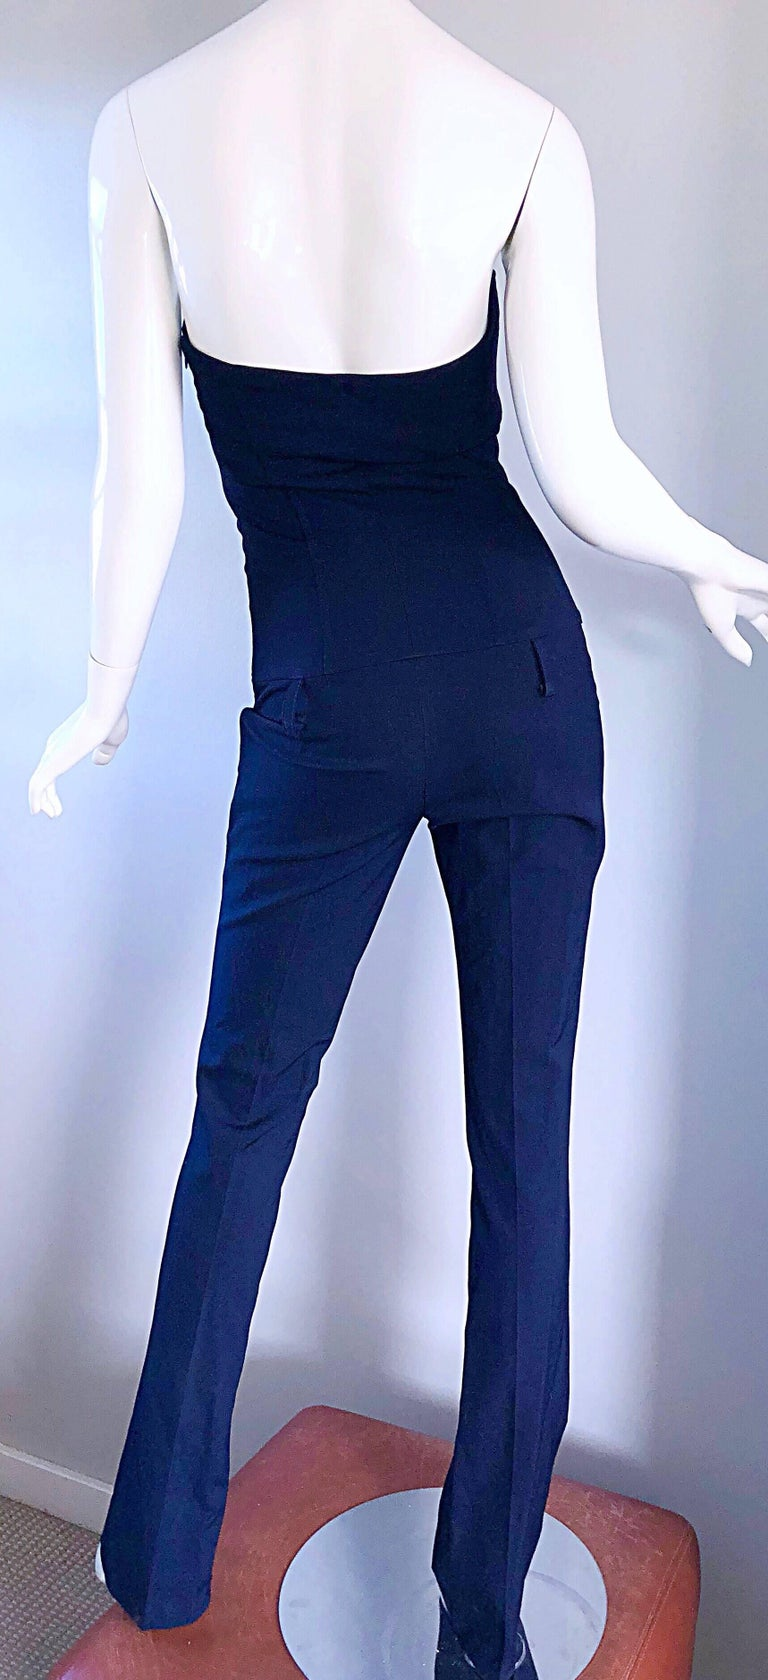 Elisabetta Franchi Navy Blue Italian Strapless Bootcut Tailored Wool Jumpsuit For Sale 2